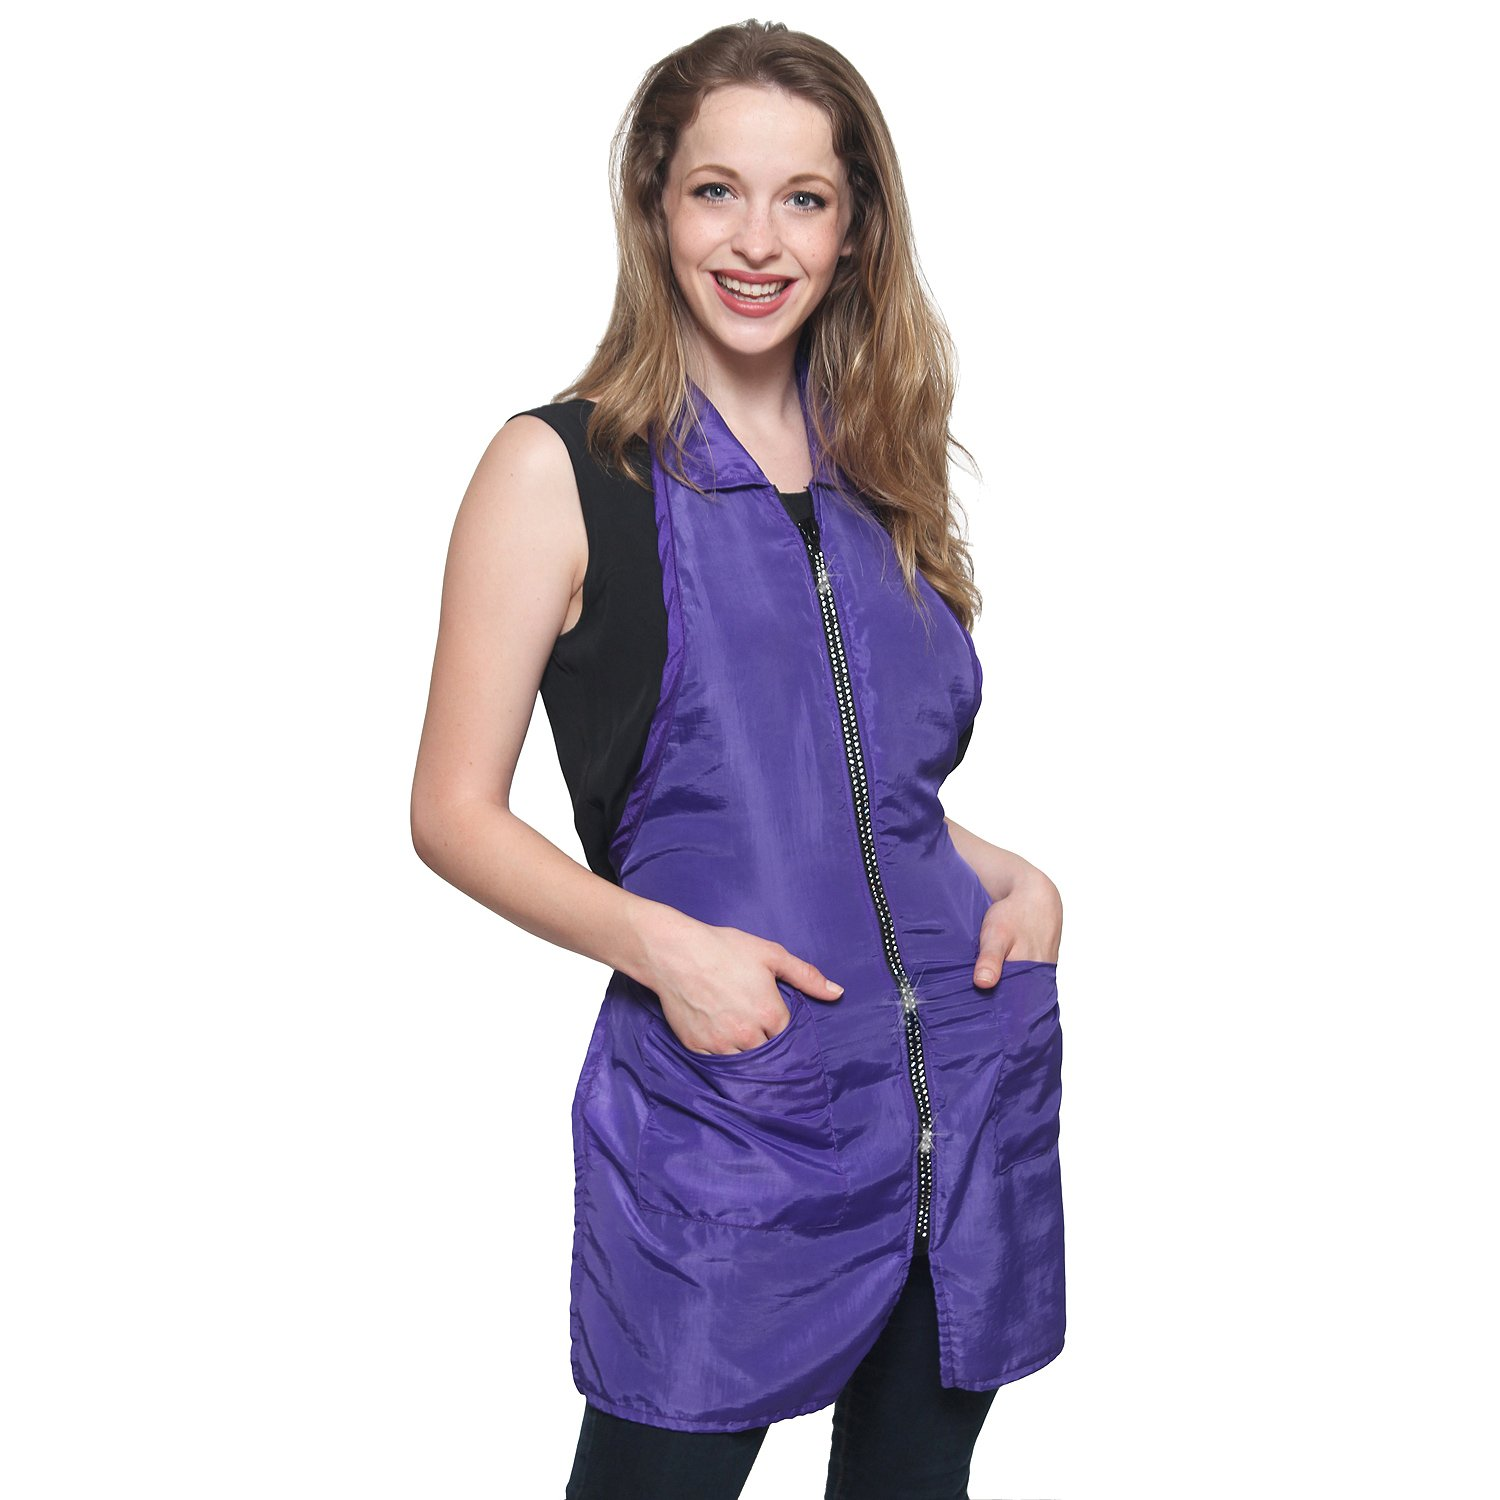 Mane Caper Rhinestone Salon Apron, Professional Quality Thigh Length with Collar Nylon Material Light Weight Extra Durability Protection, Specialized for HairCutting (purple) by Mane Caper